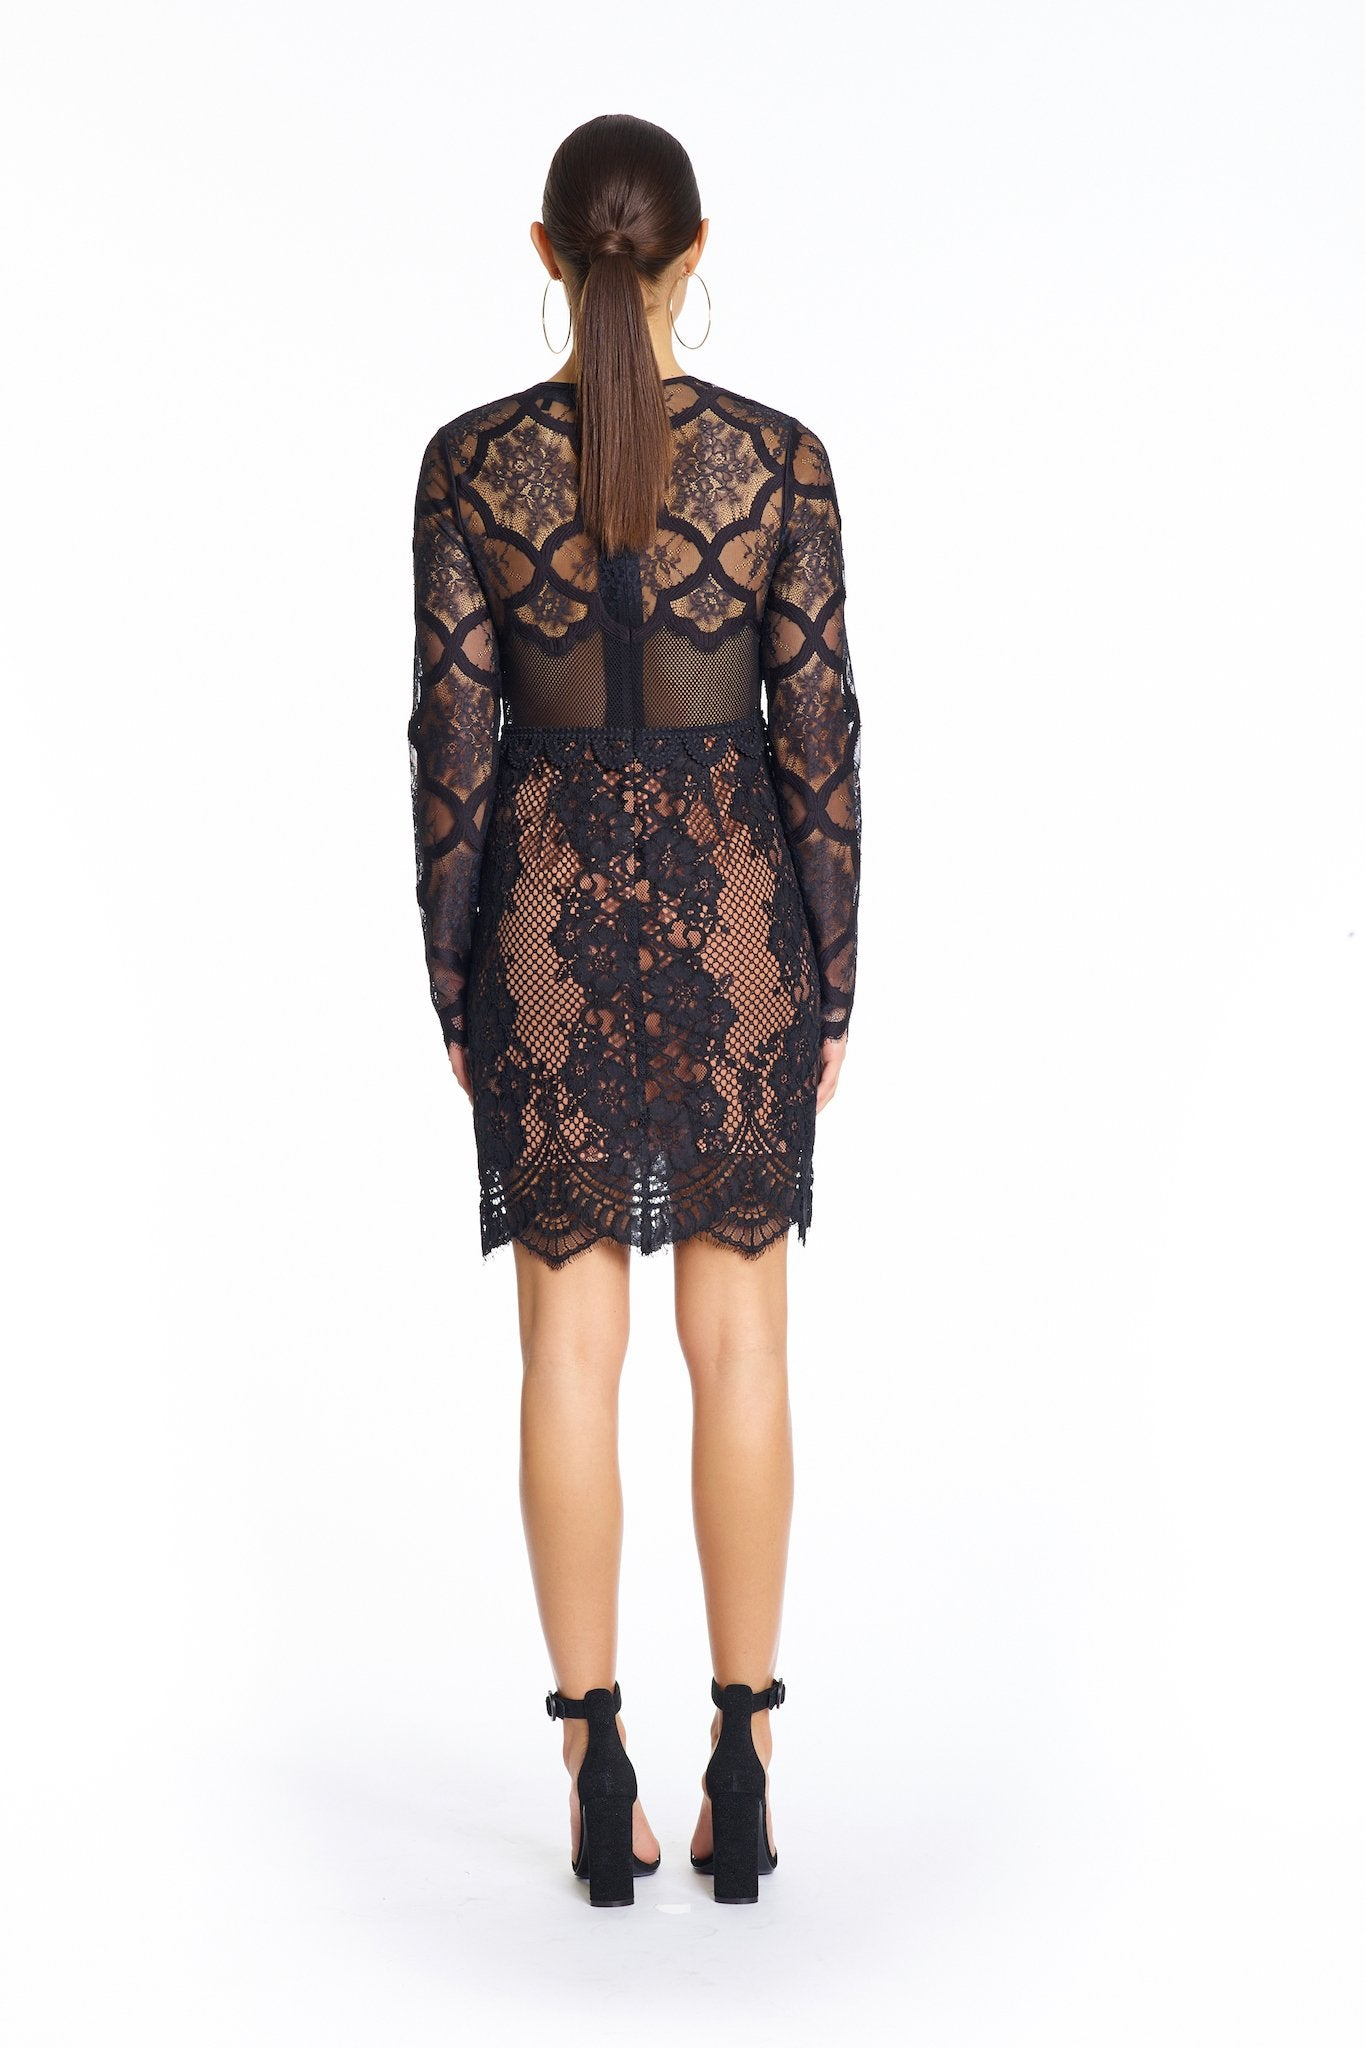 LACE DRESS DRESSES by KENDALL + KYLIE